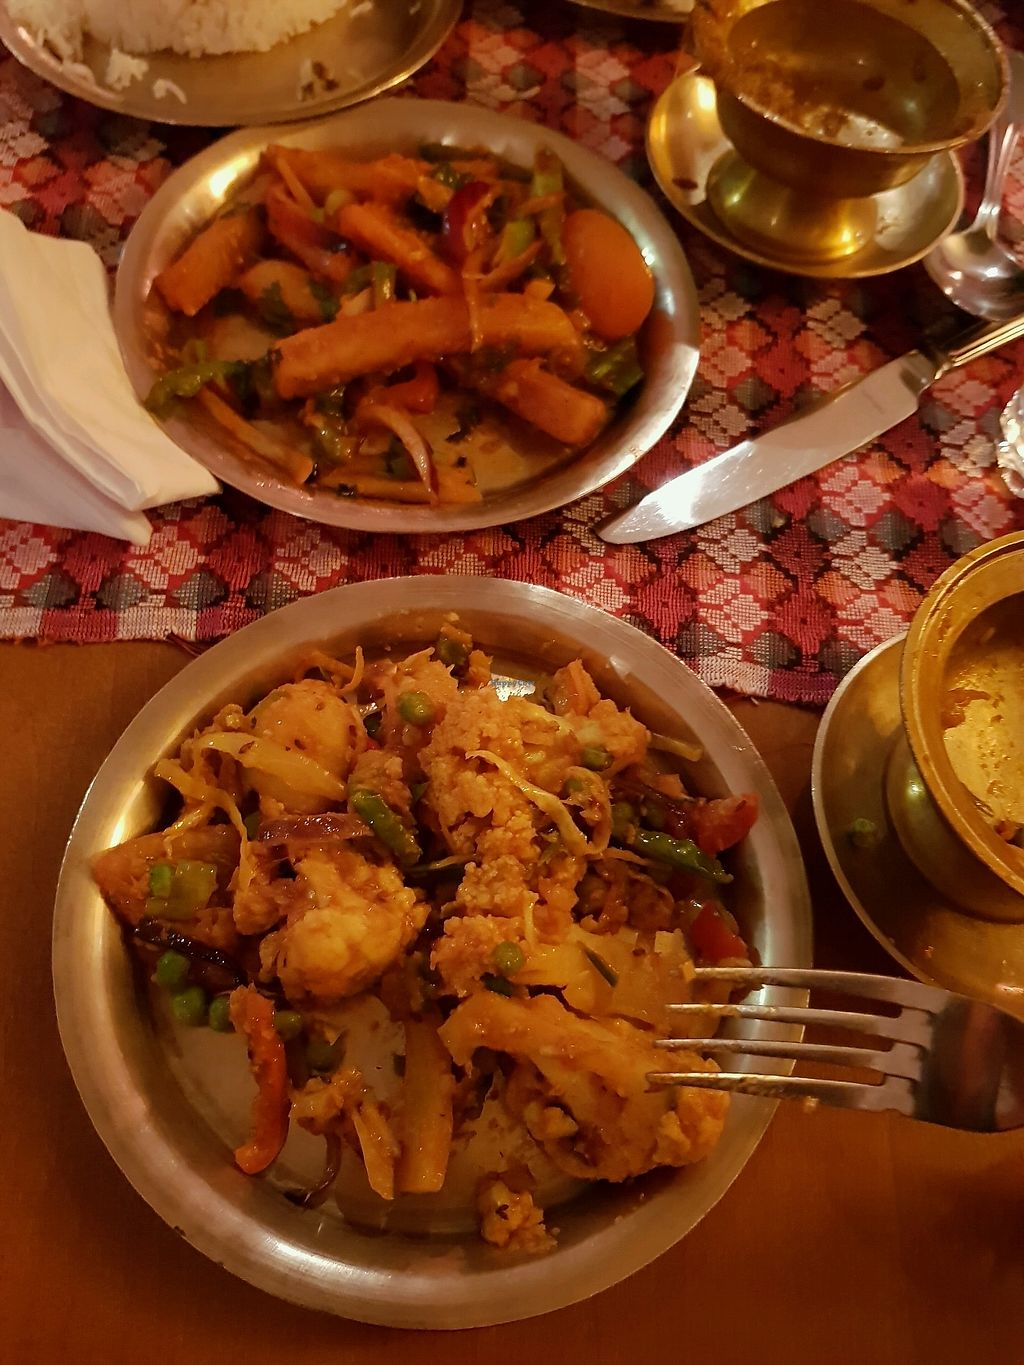 """Photo of The Yak & Yeti  by <a href=""""/members/profile/rachie18"""">rachie18</a> <br/>chilli chips and Nepali tarkari  <br/> March 17, 2018  - <a href='/contact/abuse/image/104817/372074'>Report</a>"""